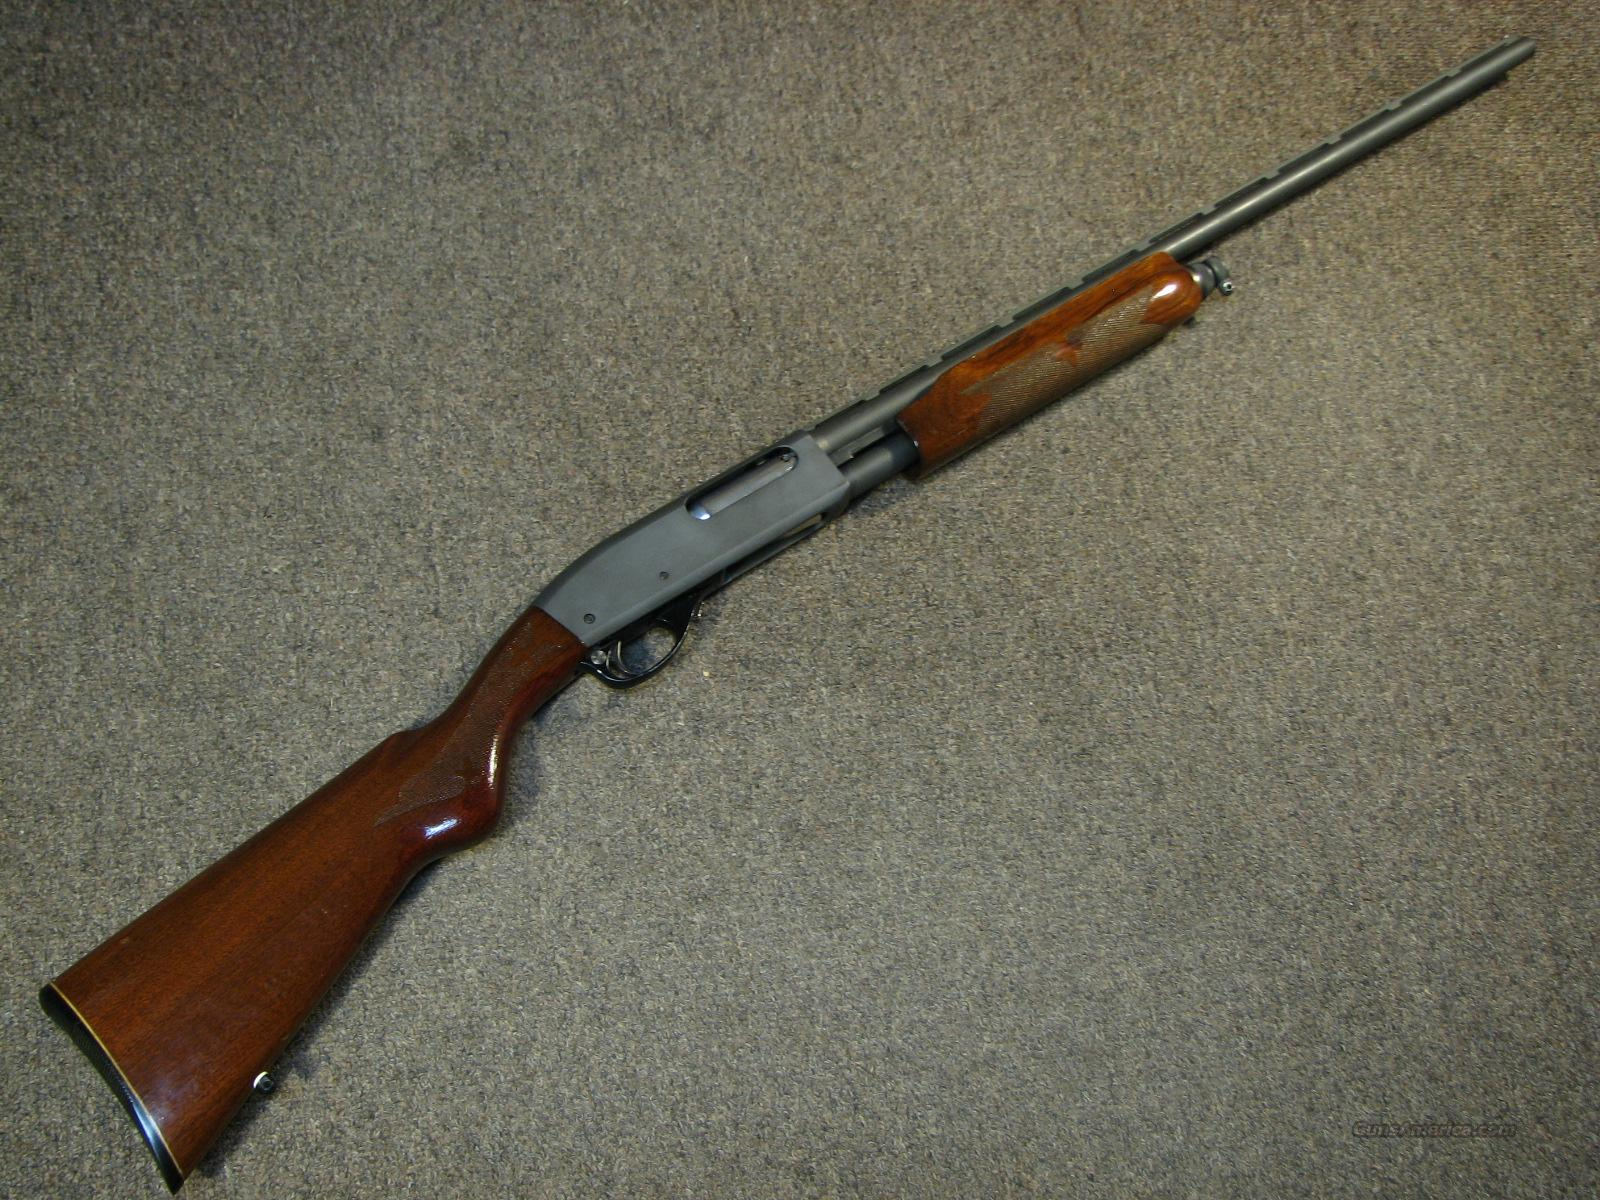 REMINGTON 870 WINGMASTER 28 GAUGE  Guns > Shotguns > Remington Shotguns  > Pump > Hunting